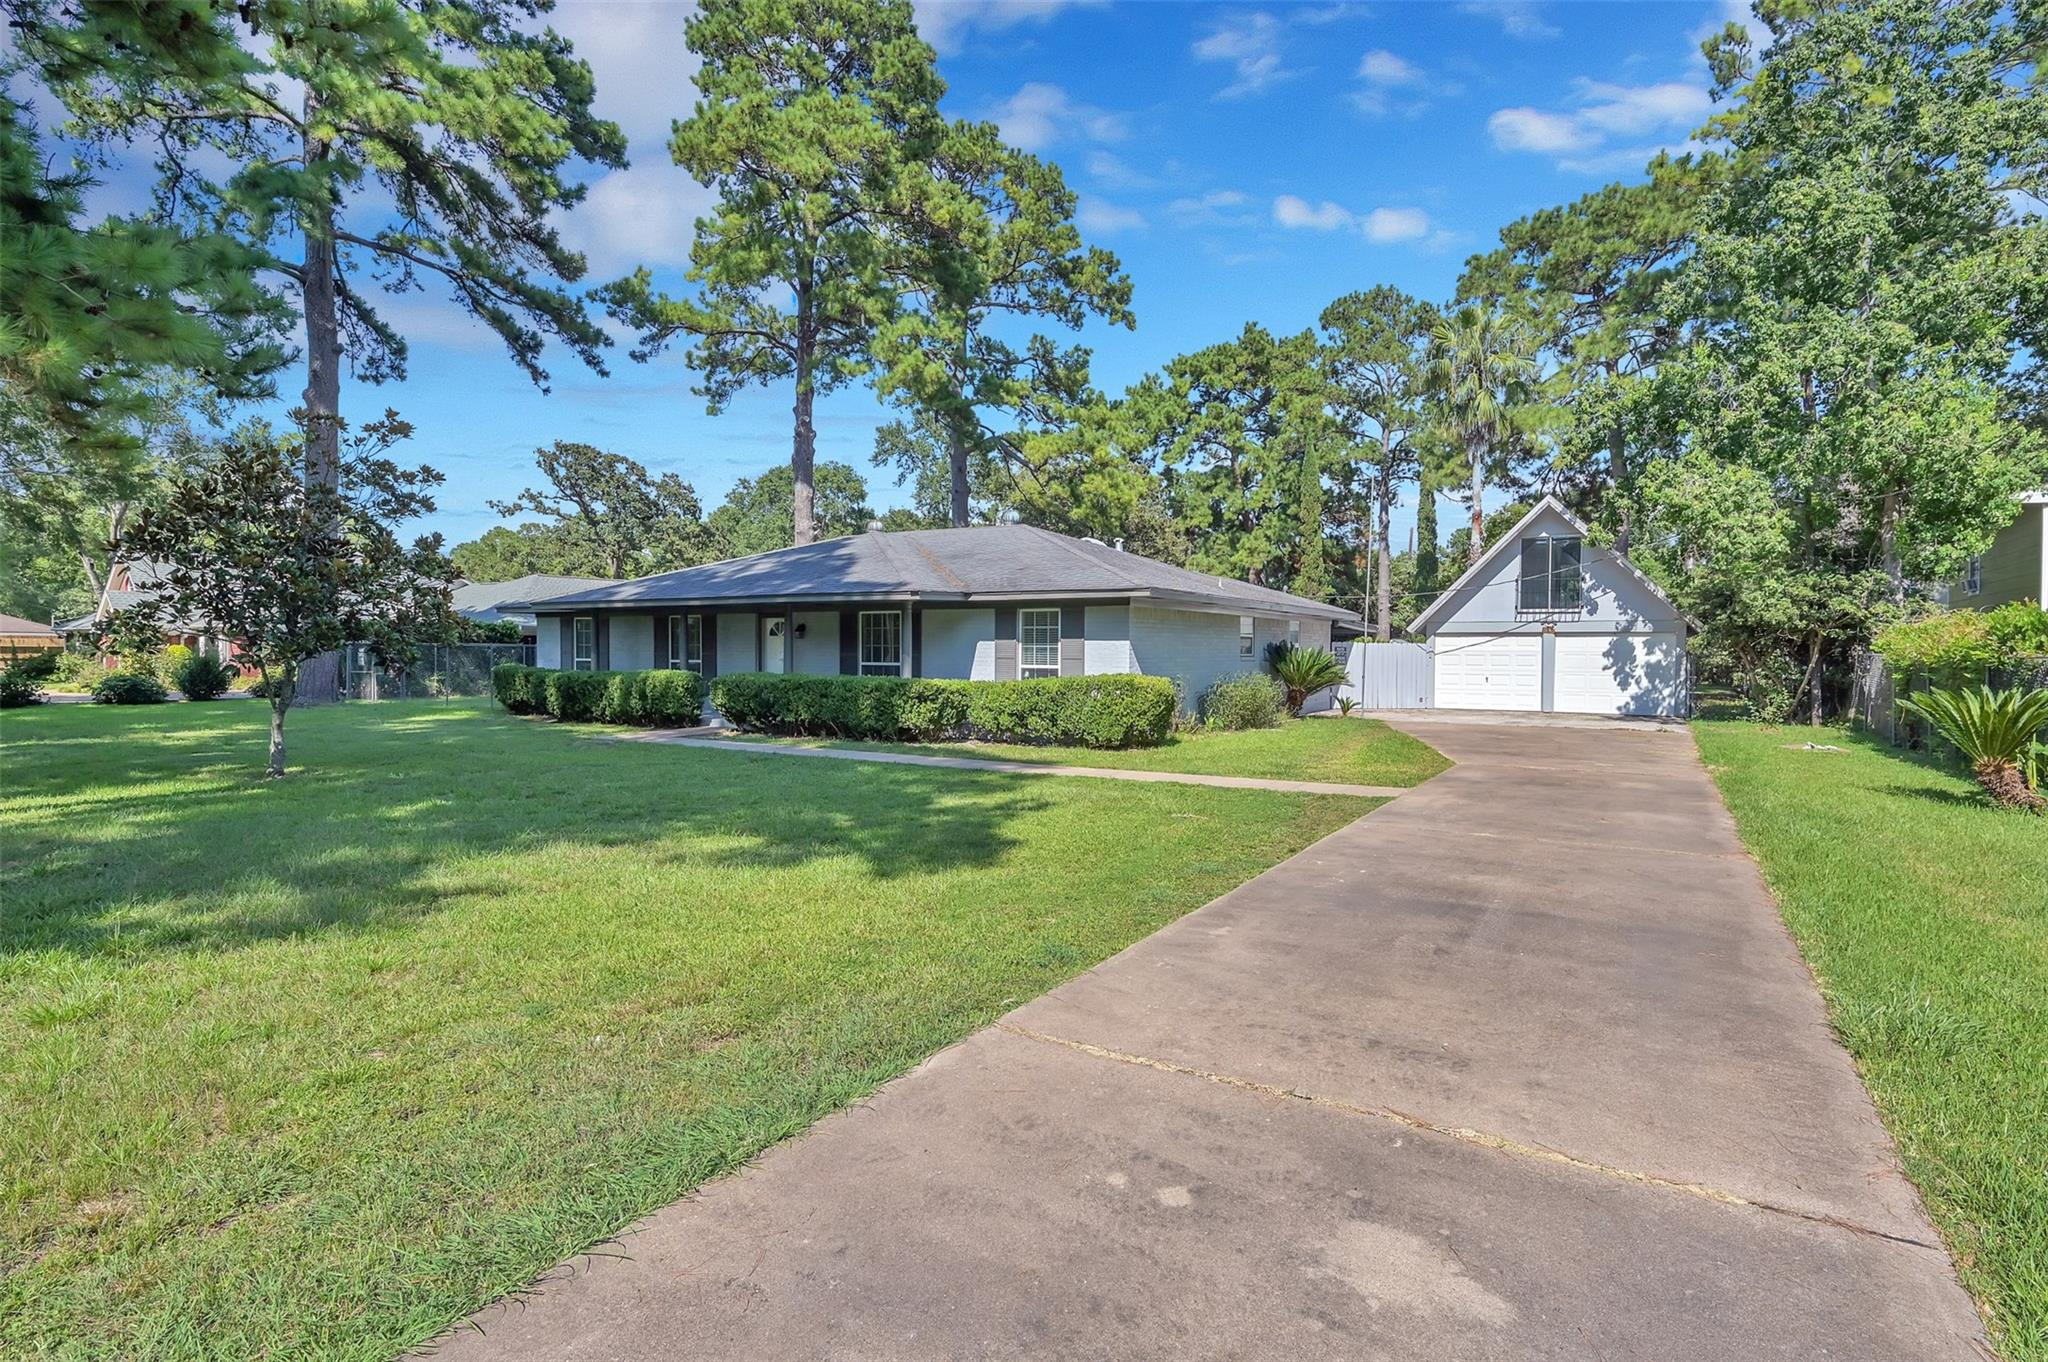 11610 Timber Hollow Property Photo - Houston, TX real estate listing